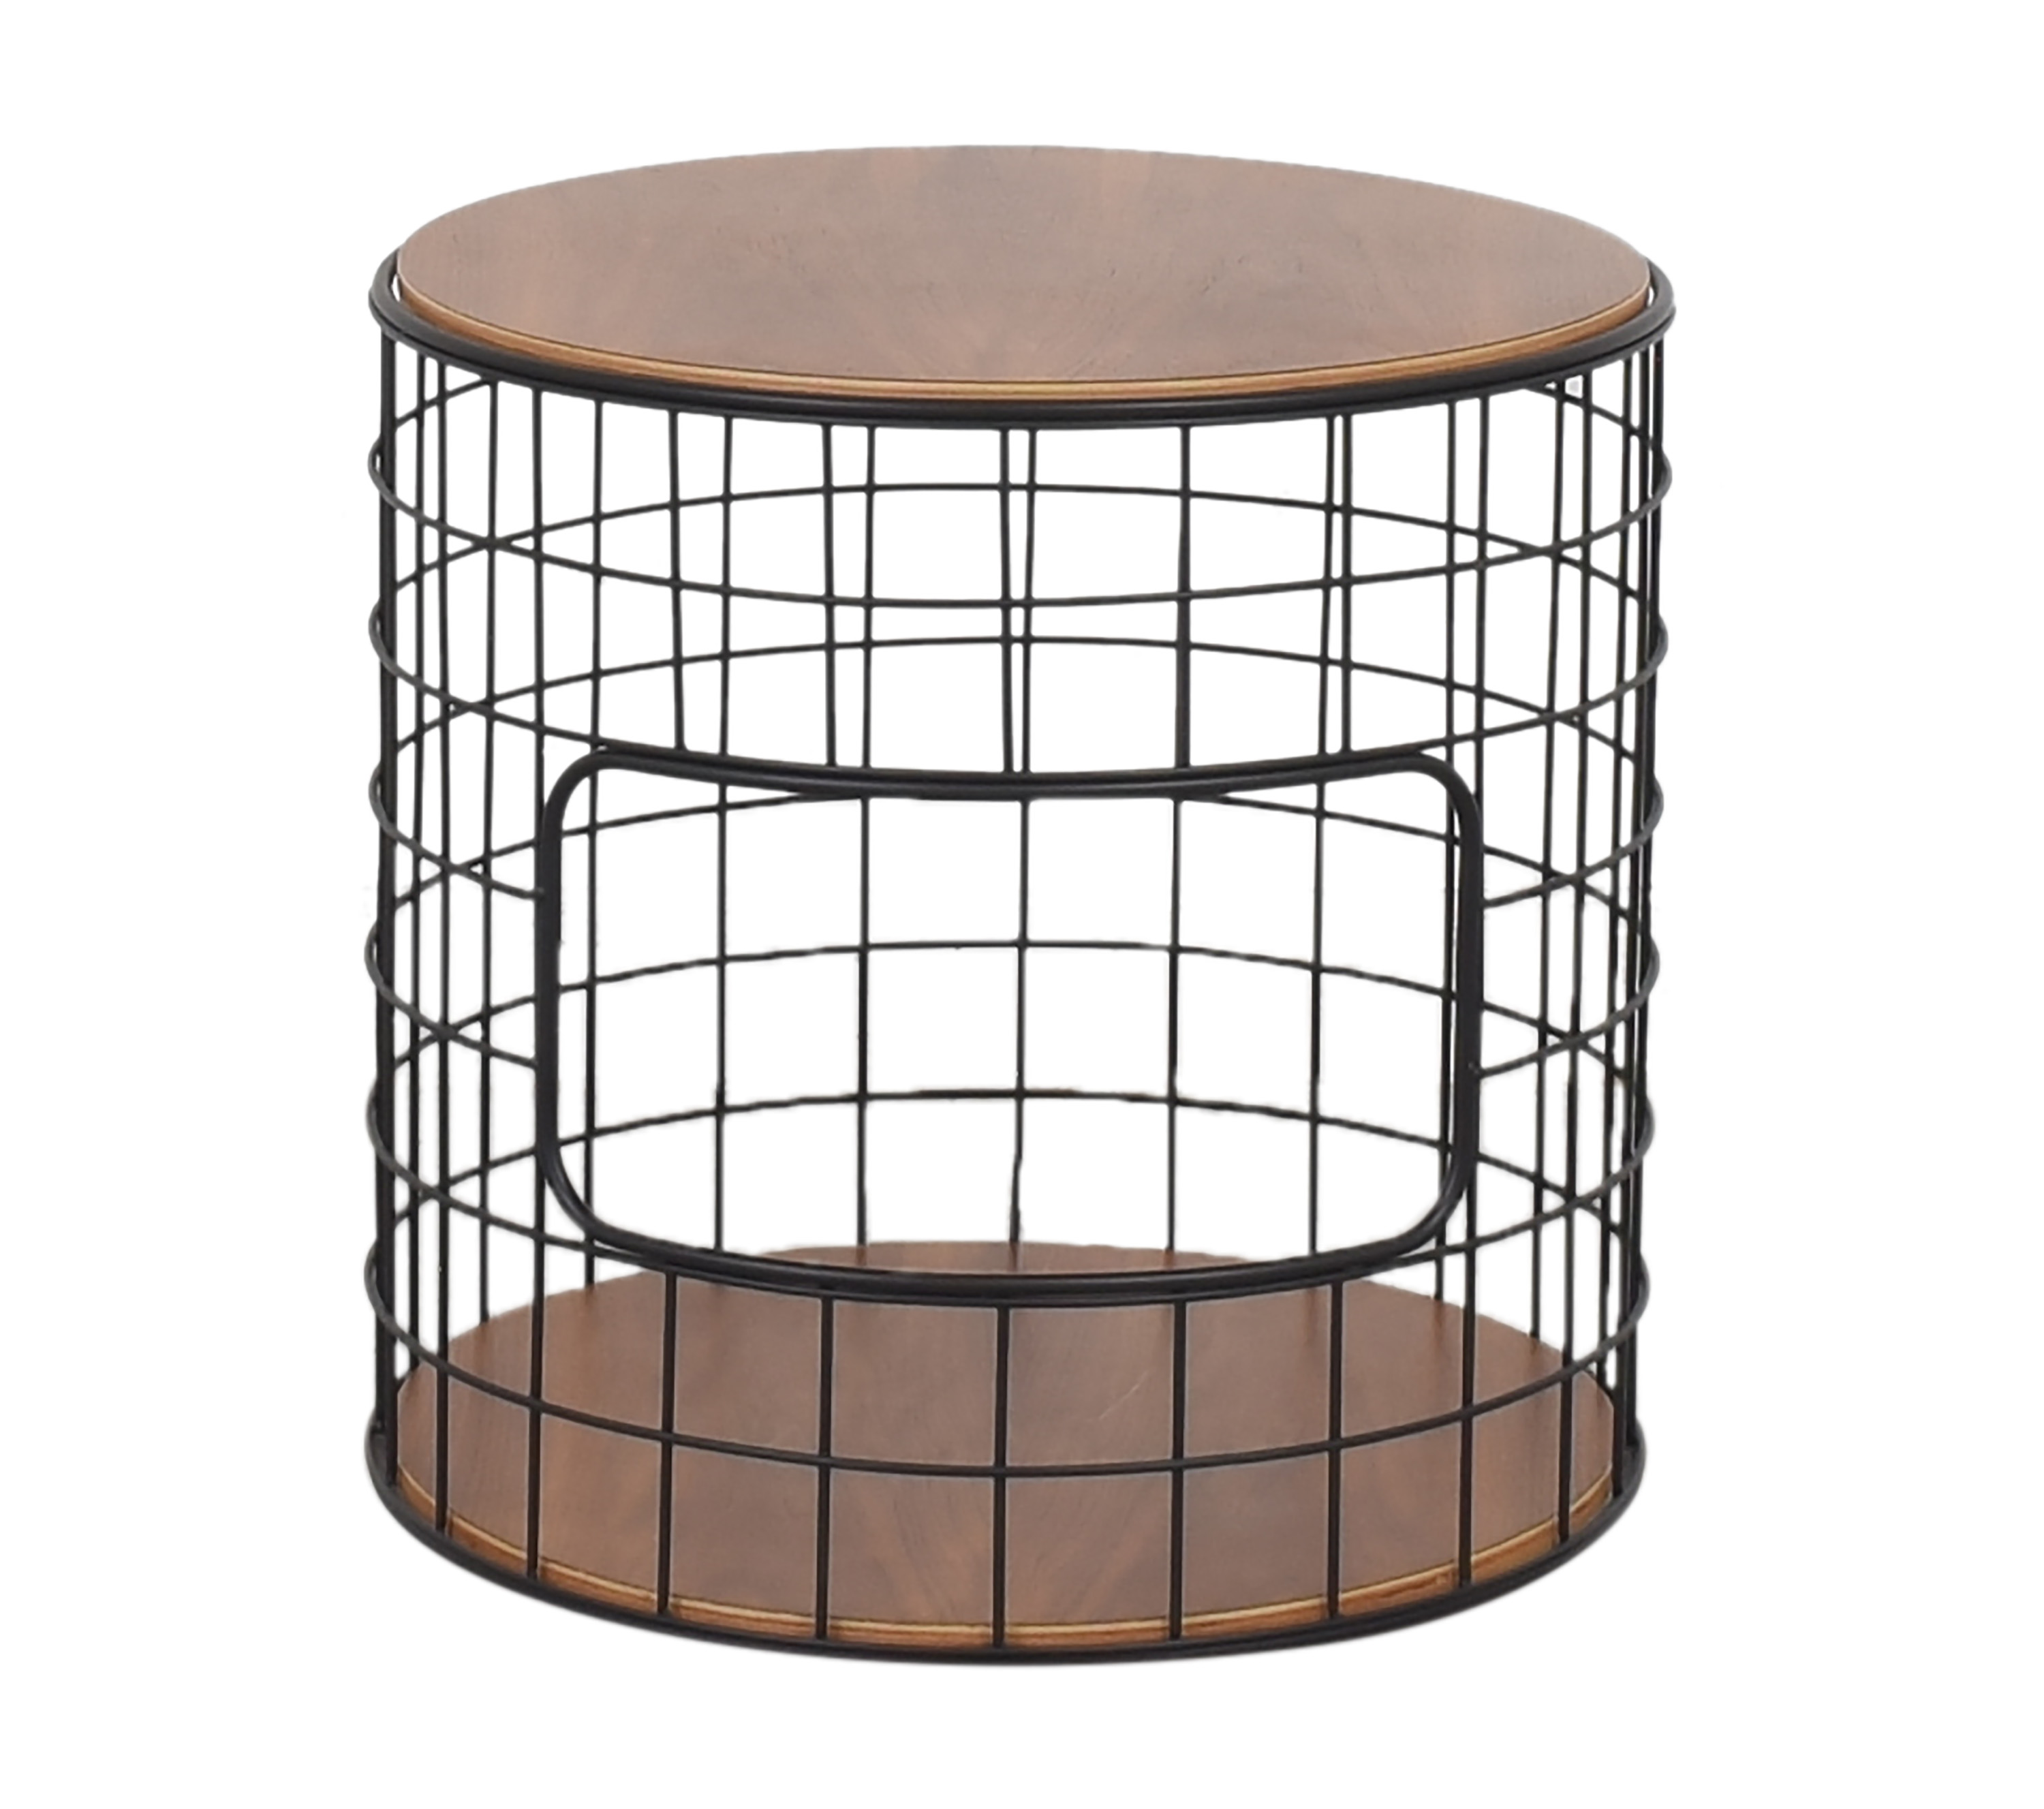 Gus Modern Gus Modern Wireframe End Table on sale